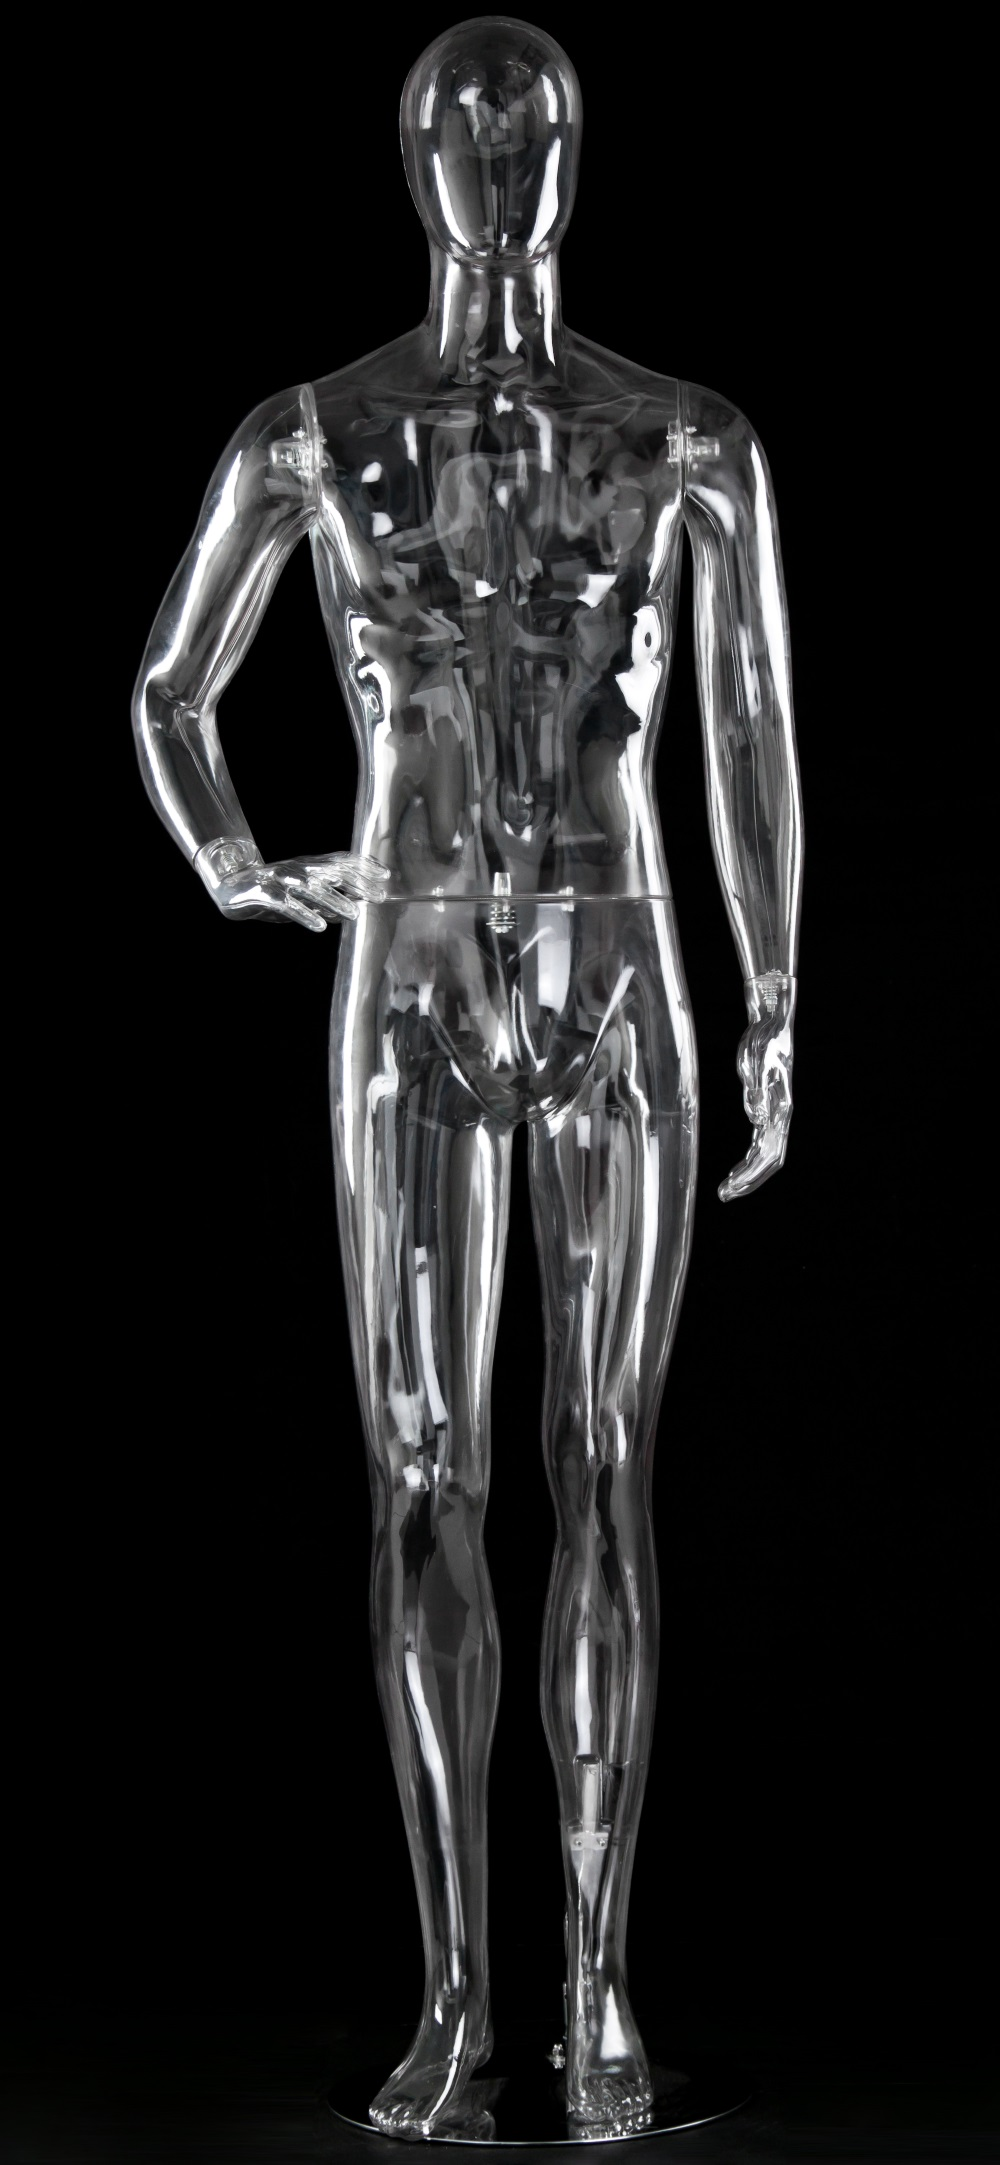 Schaufensterfigur TRANSPARENT Herr, gewinkelter Arm